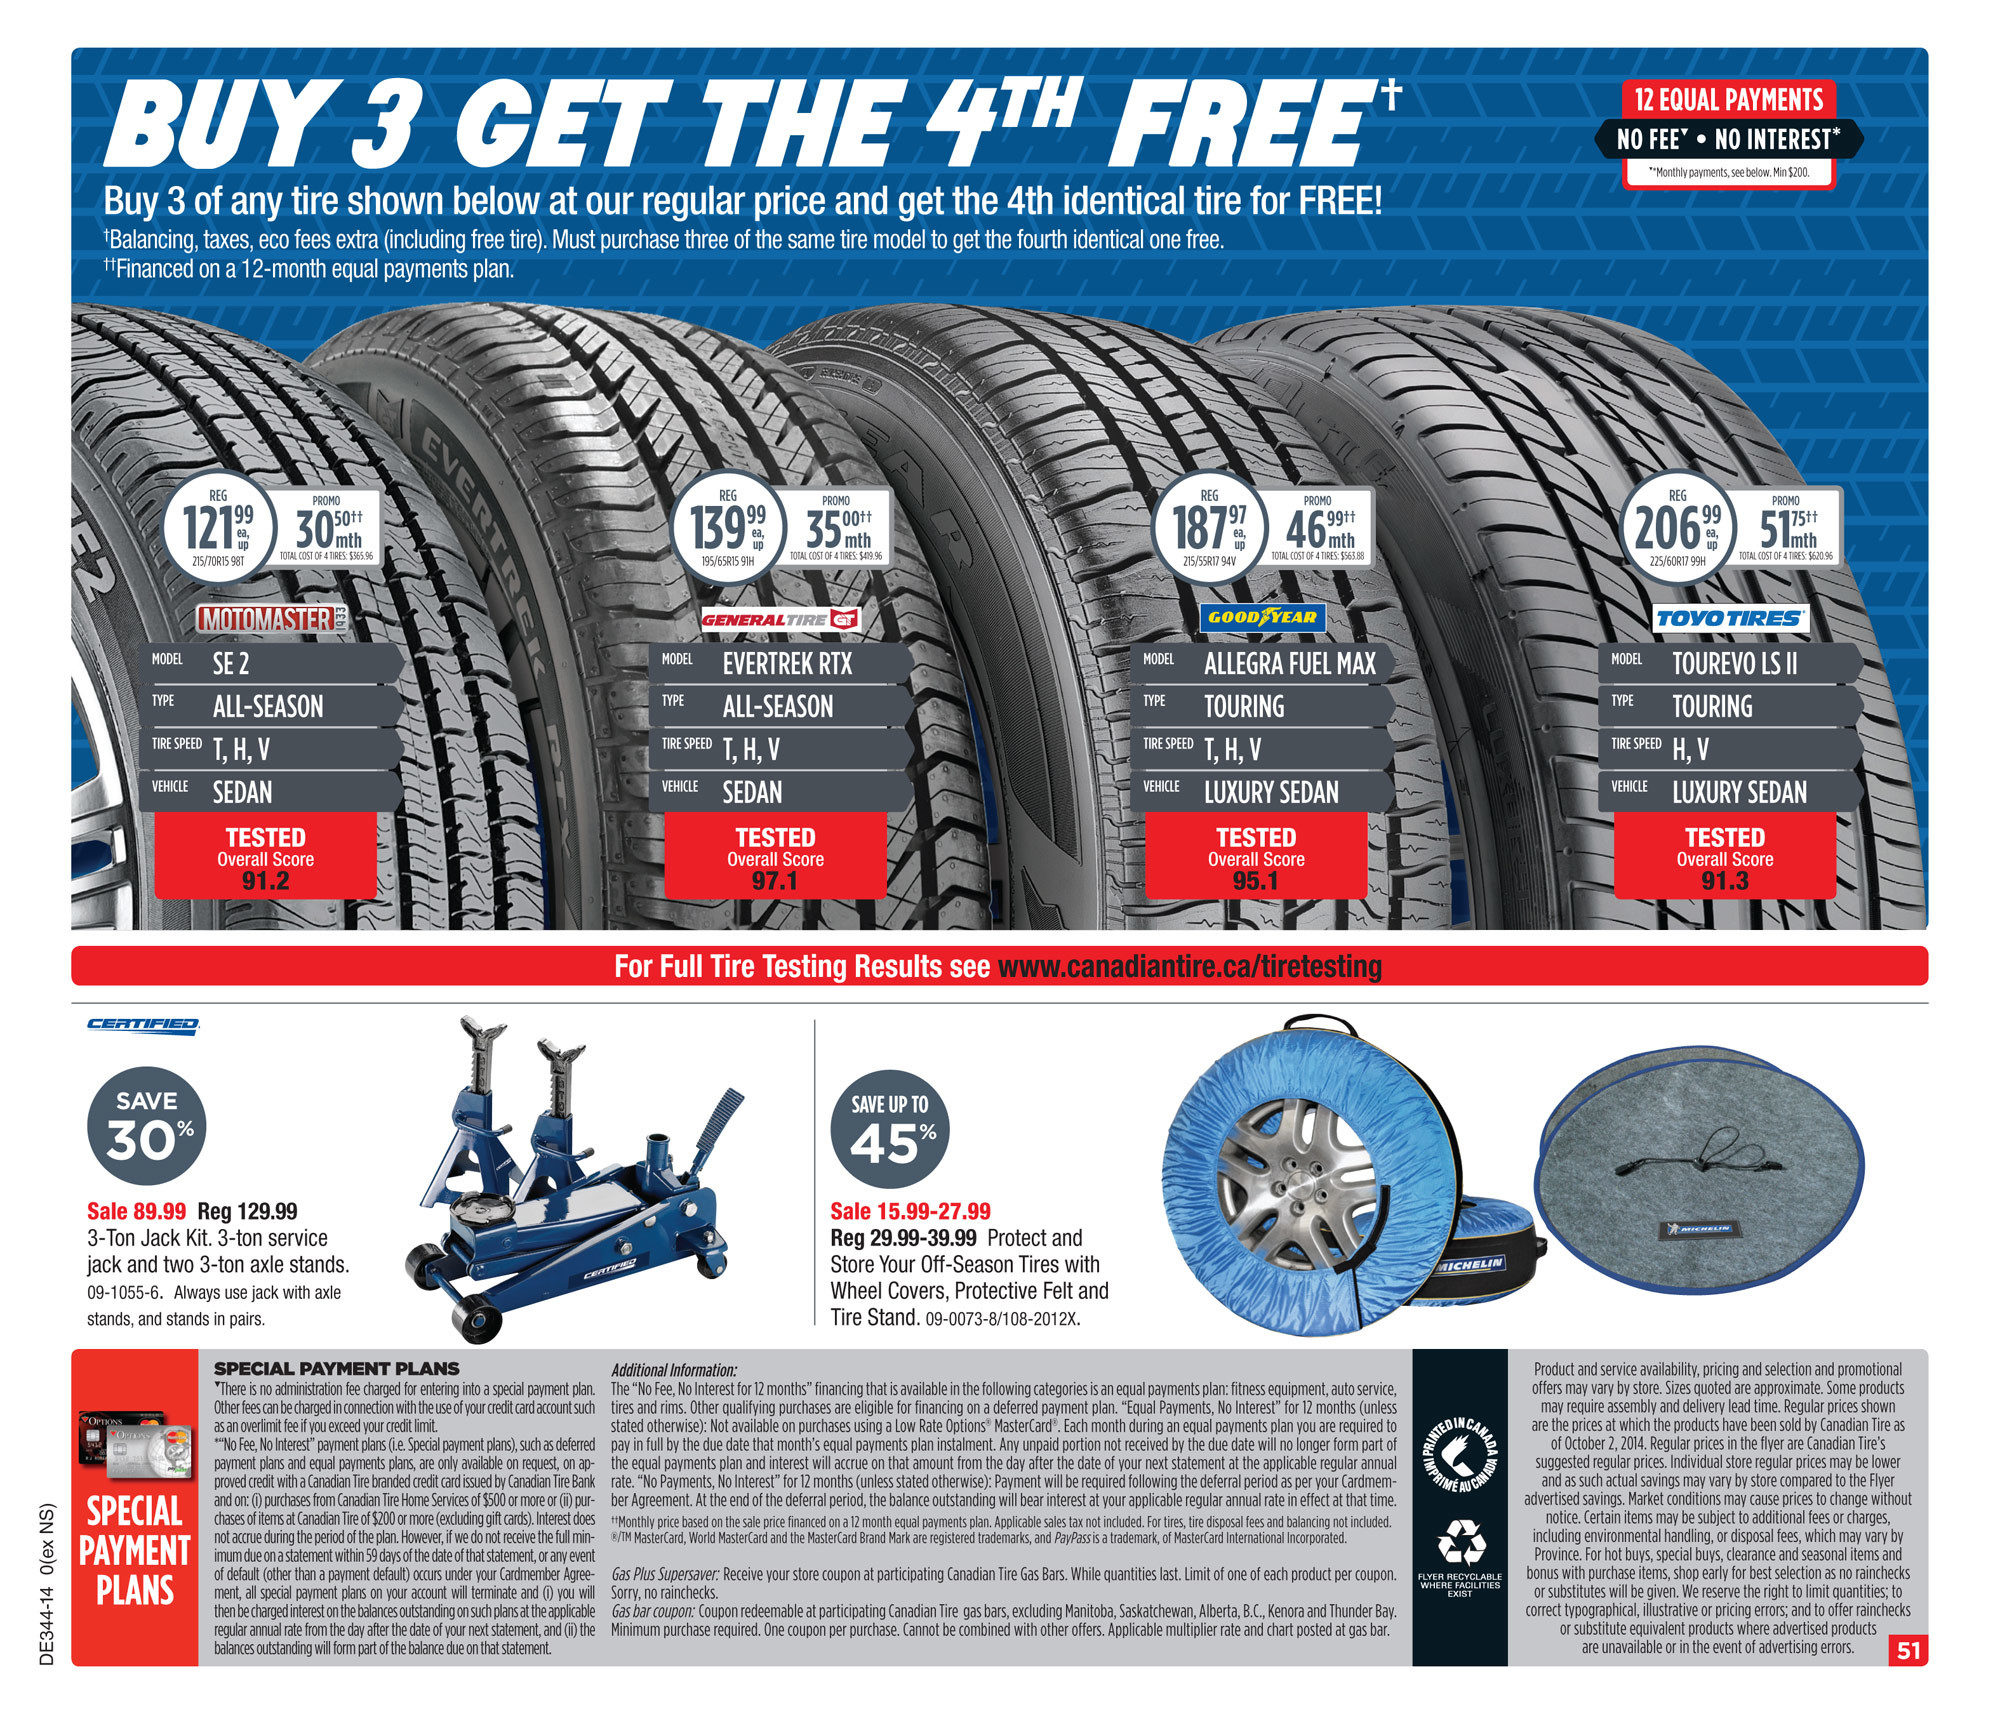 Canadian Tire Weekly Flyer Weekly Flyer Oct 24 – 30 RedFlagDeals